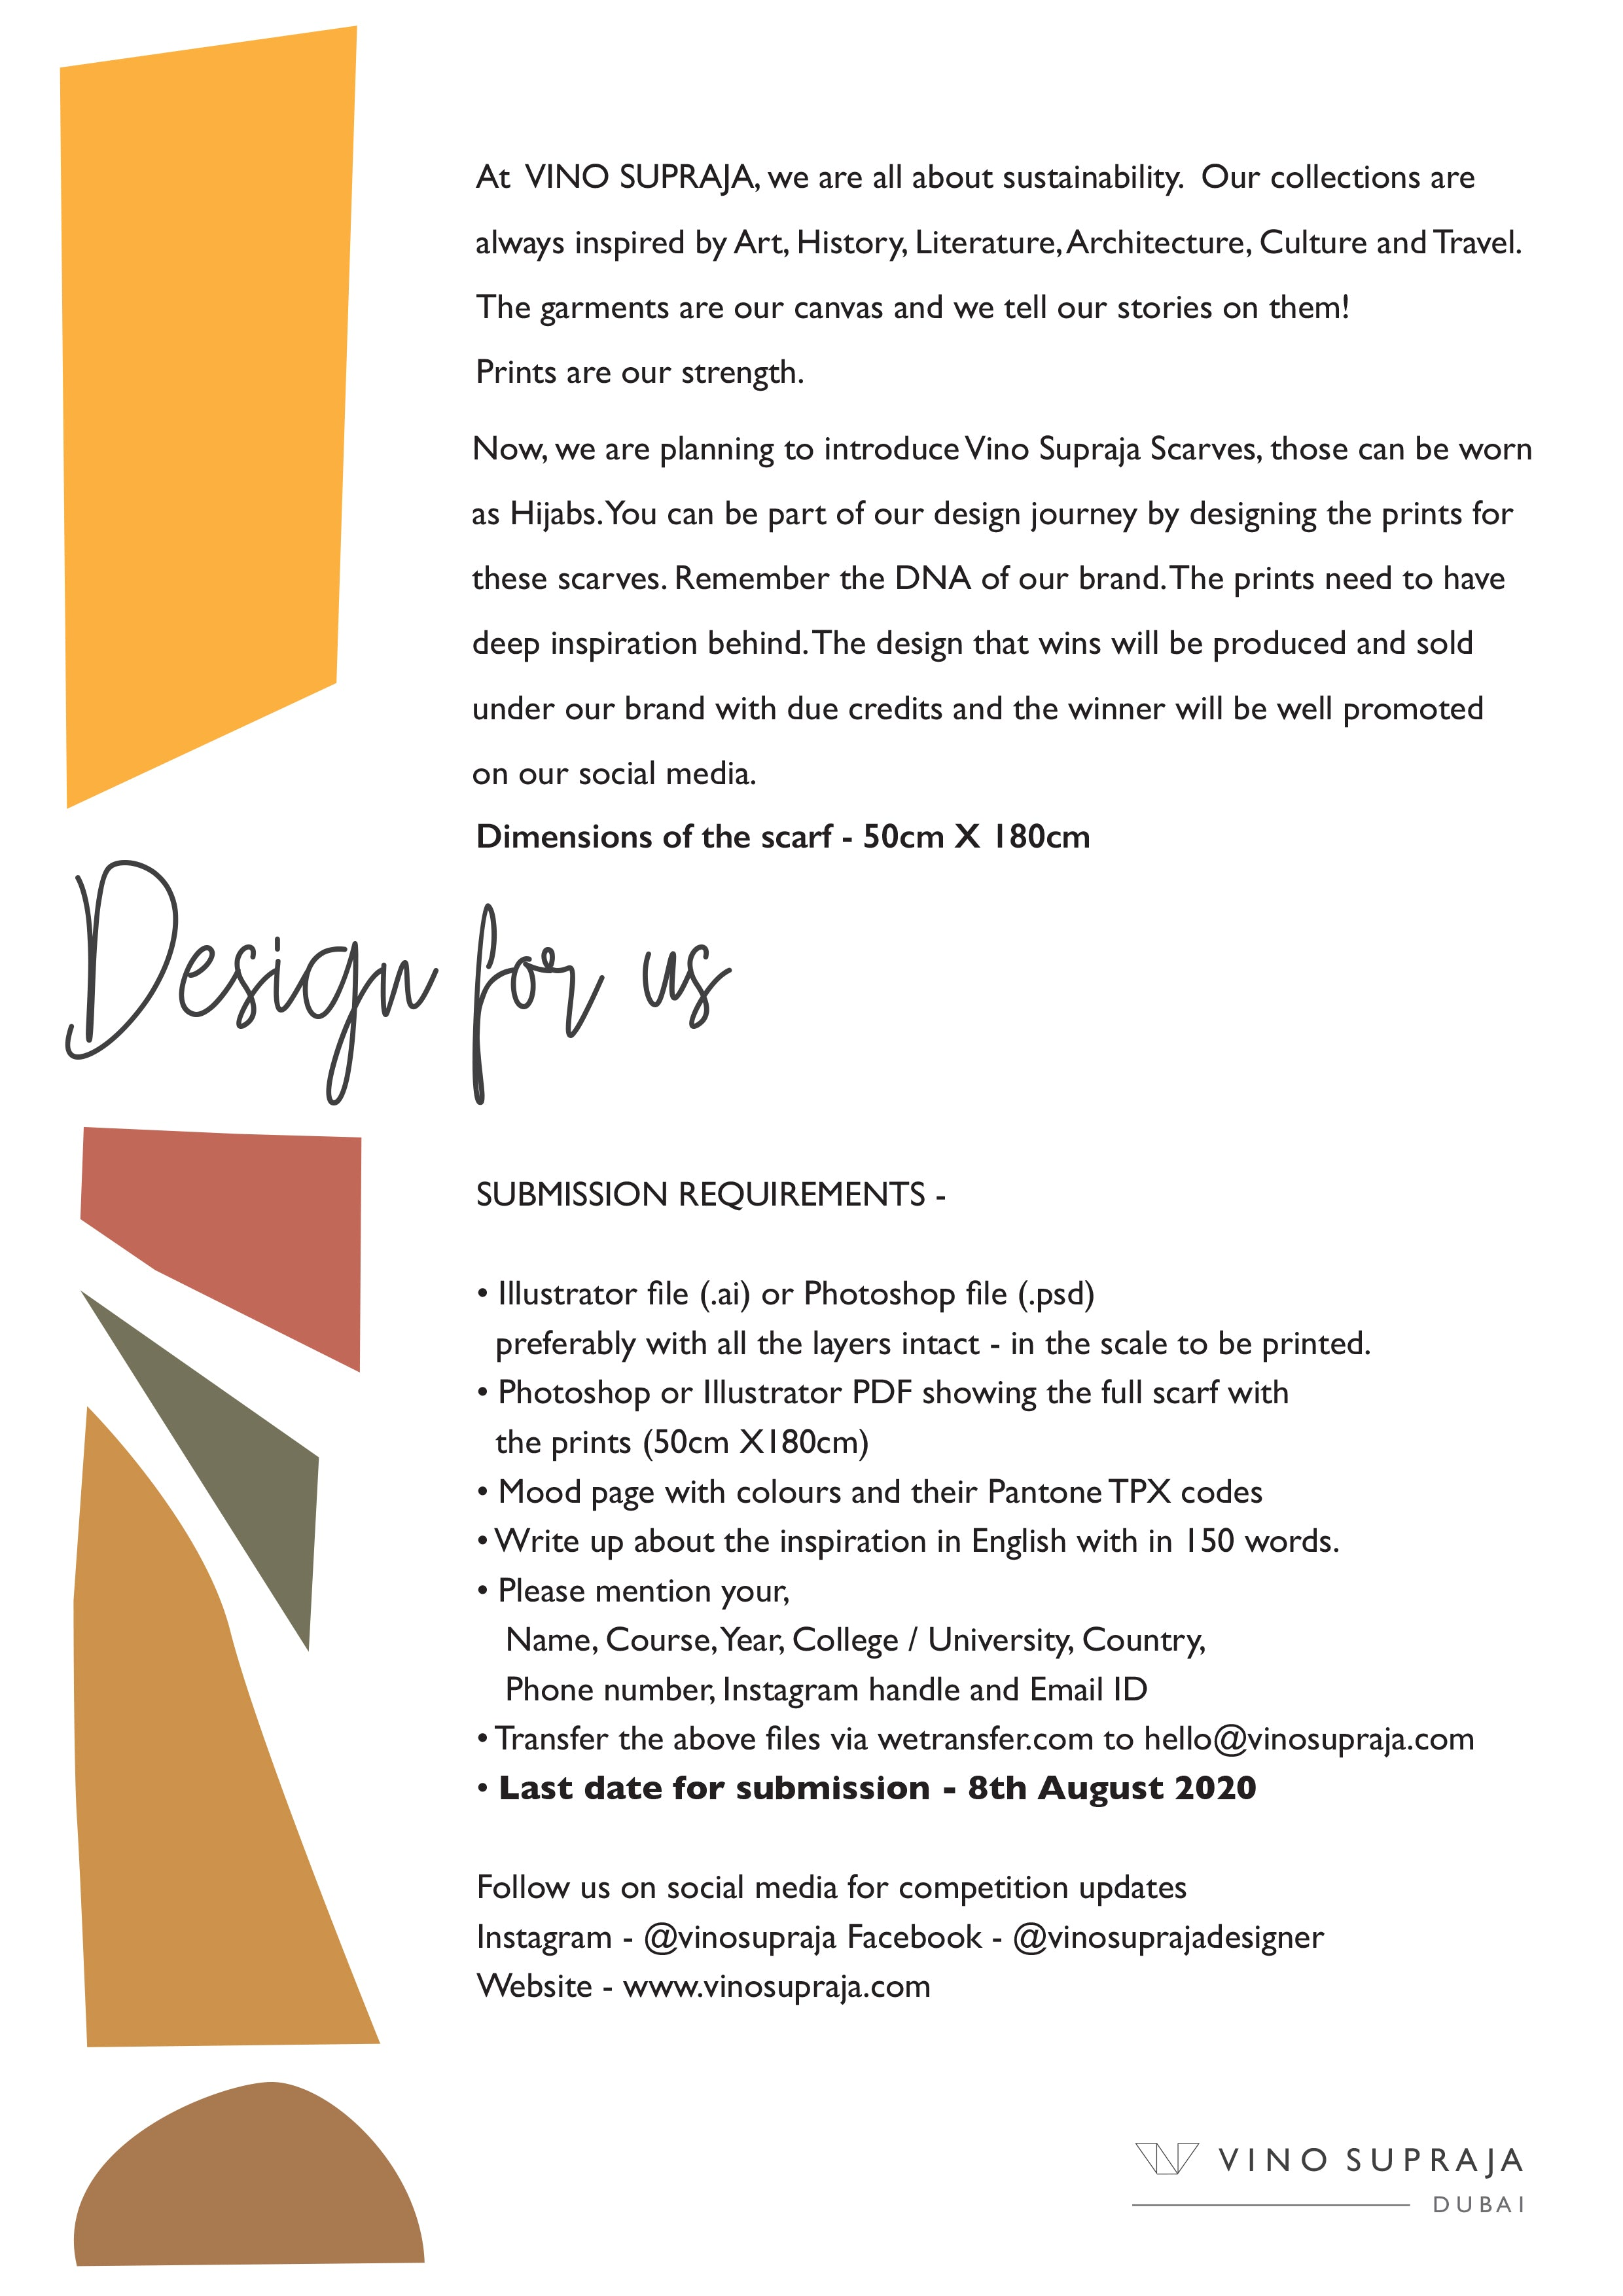 VINOSUPRAJA-DESIGN FOR US-SUSTAINABLEFASHION